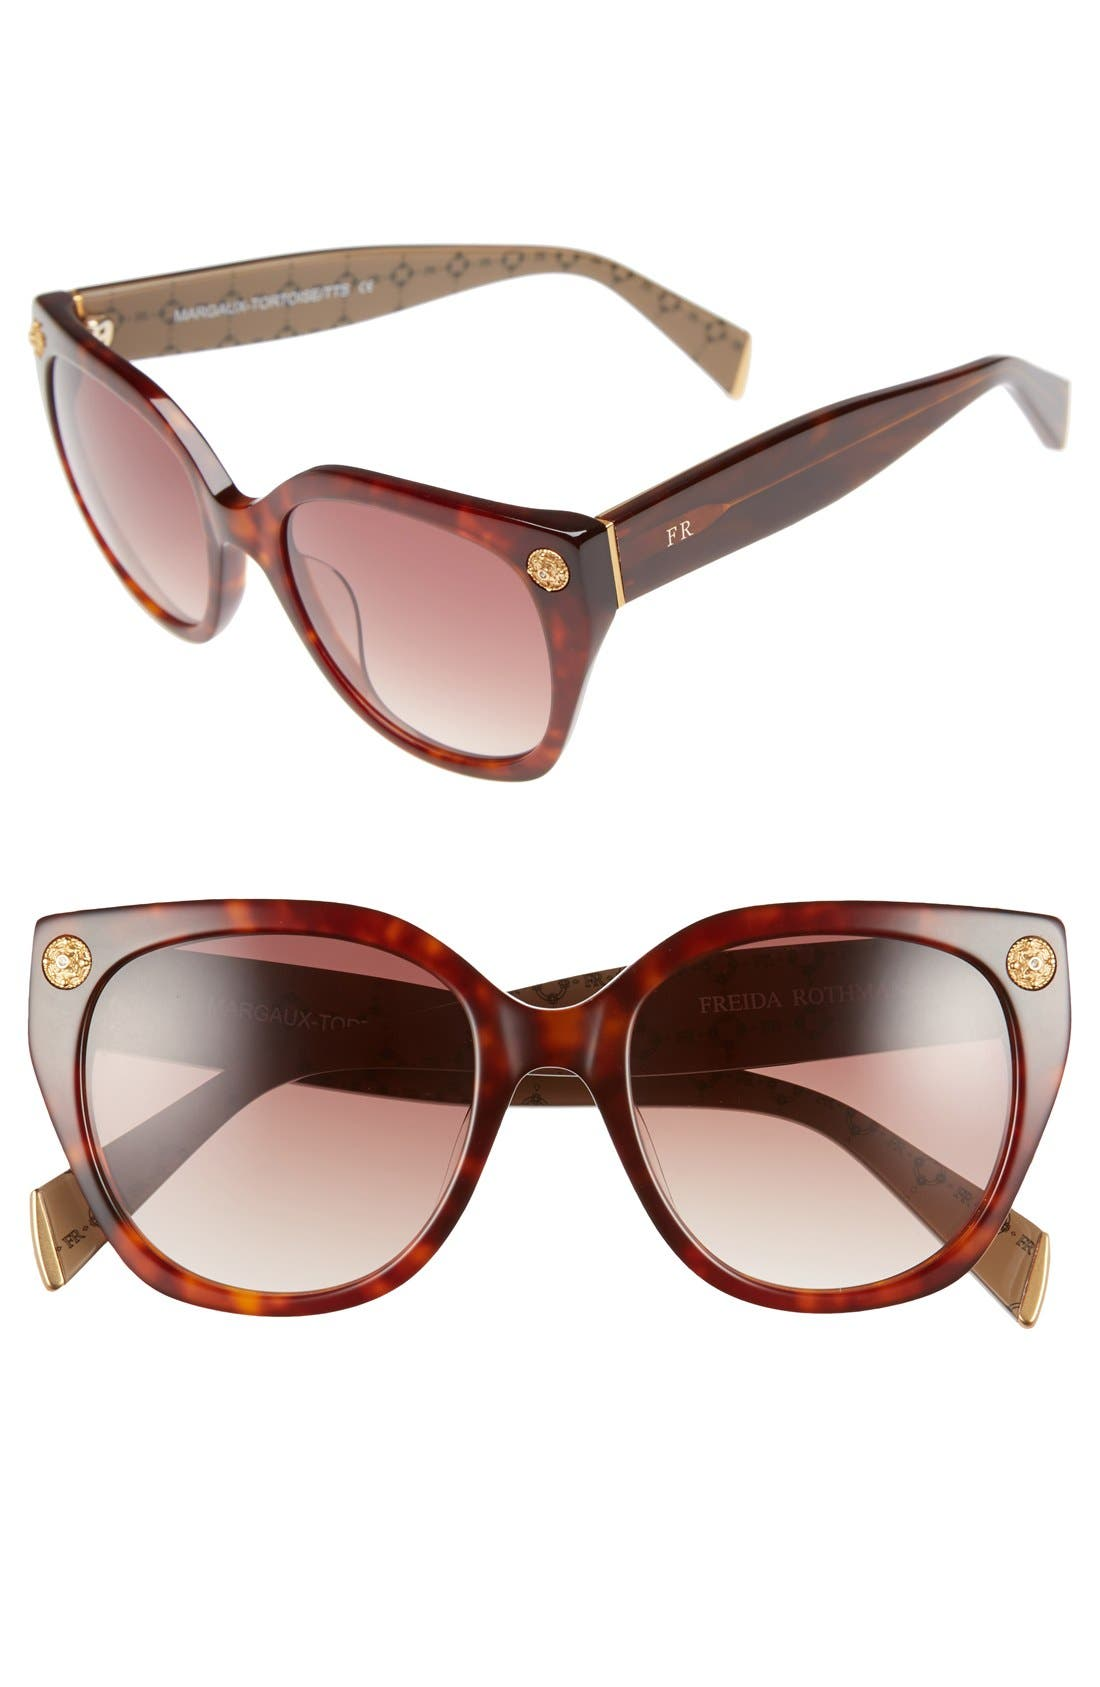 Freida Rothman 'Margaux Elegant' 54mm Retro Sunglasses,                             Main thumbnail 1, color,                             Tortoise